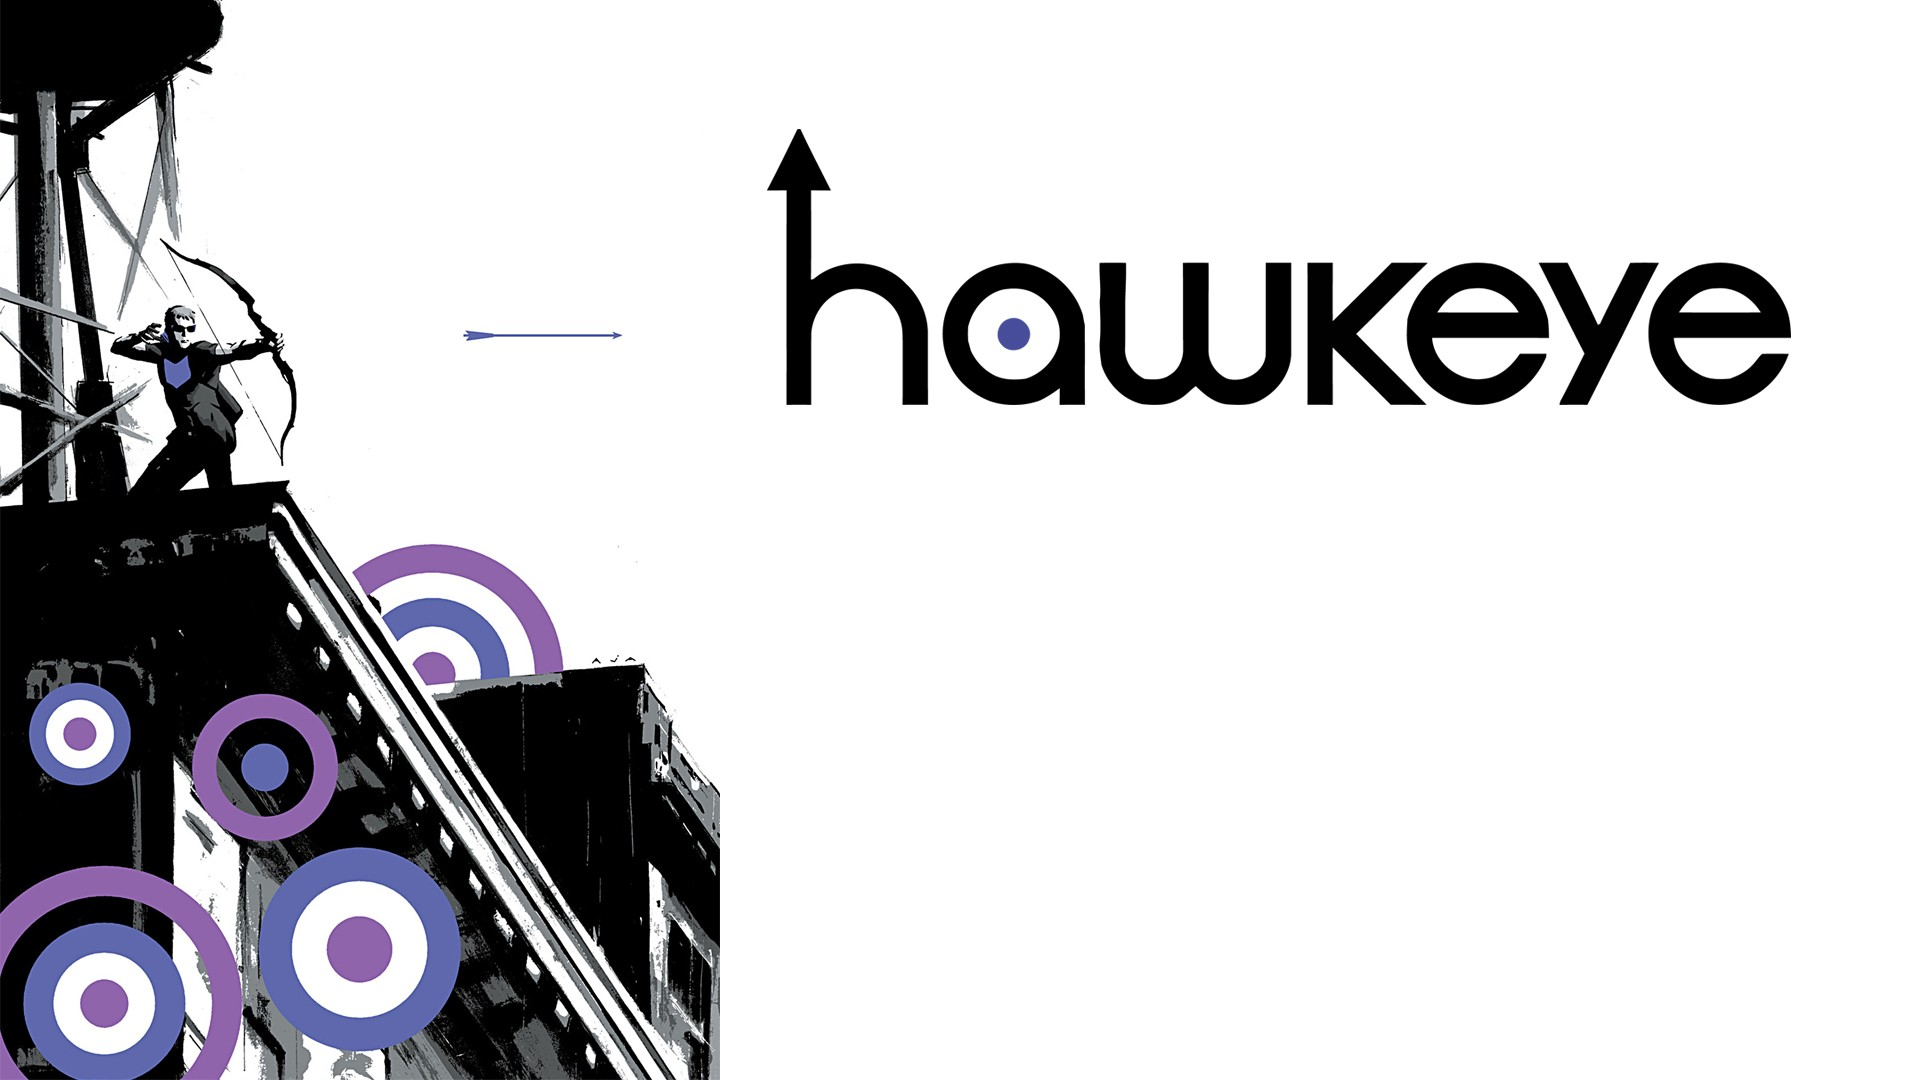 hawkeye wallpapers page - photo #21